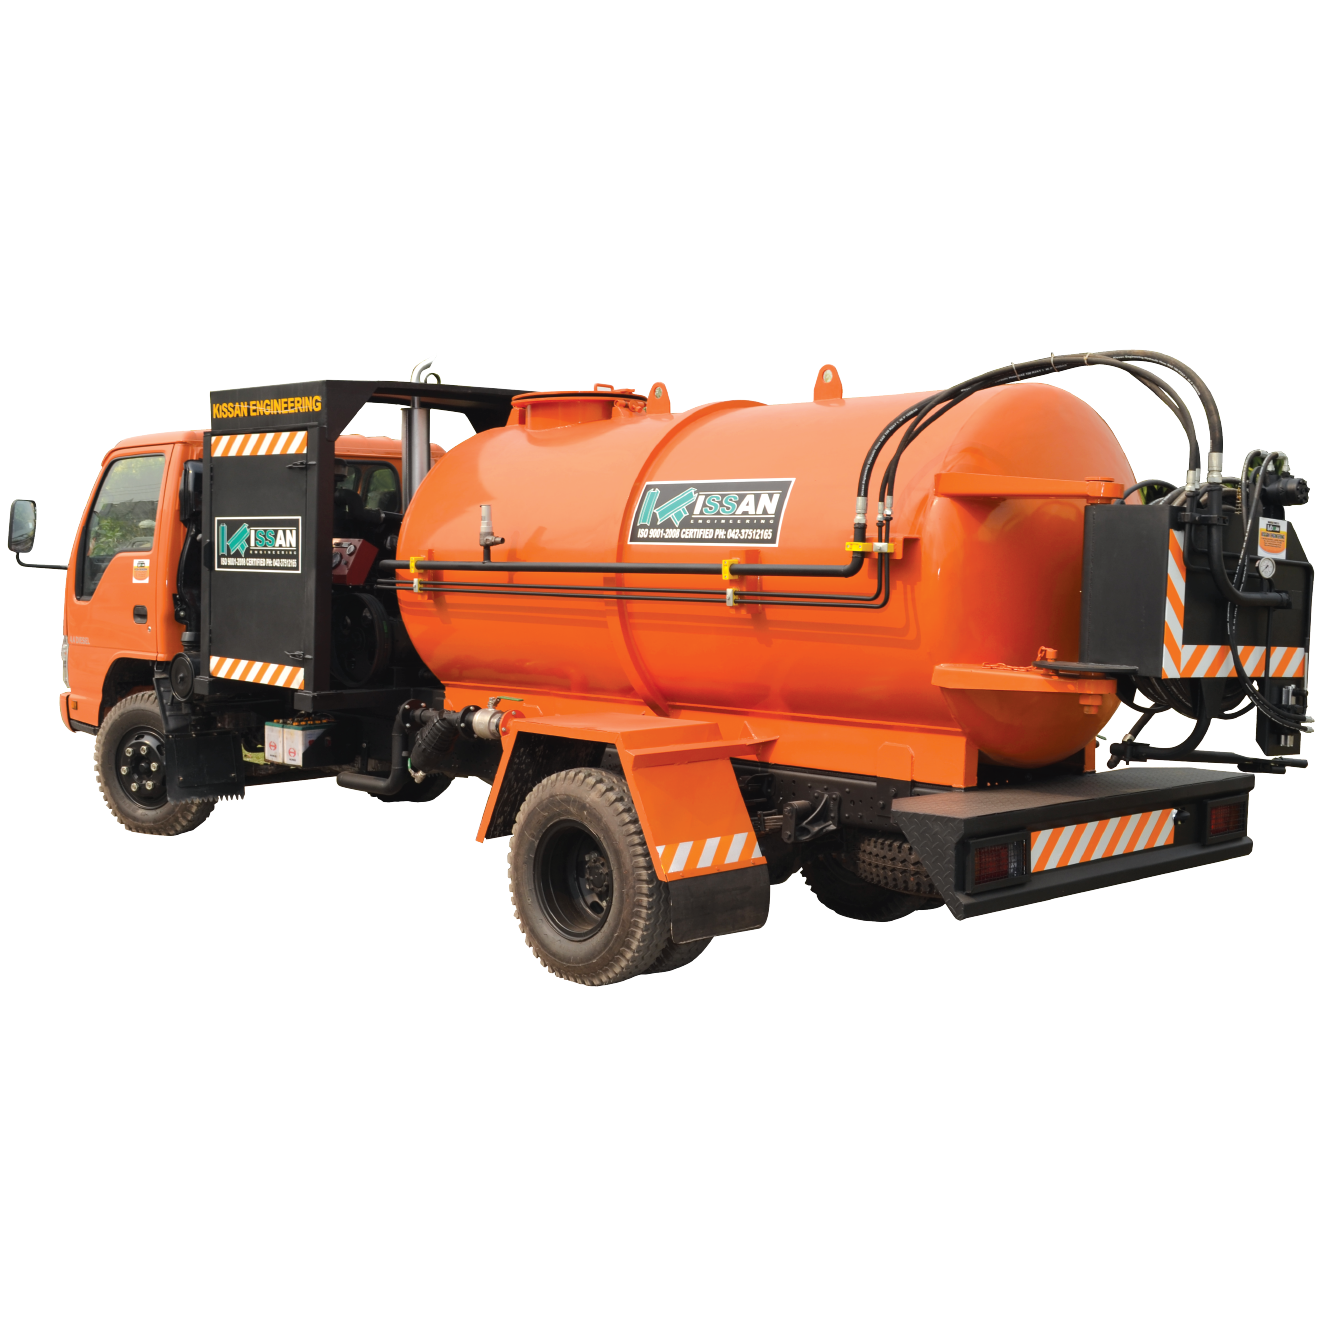 Sewer Jetting Unit